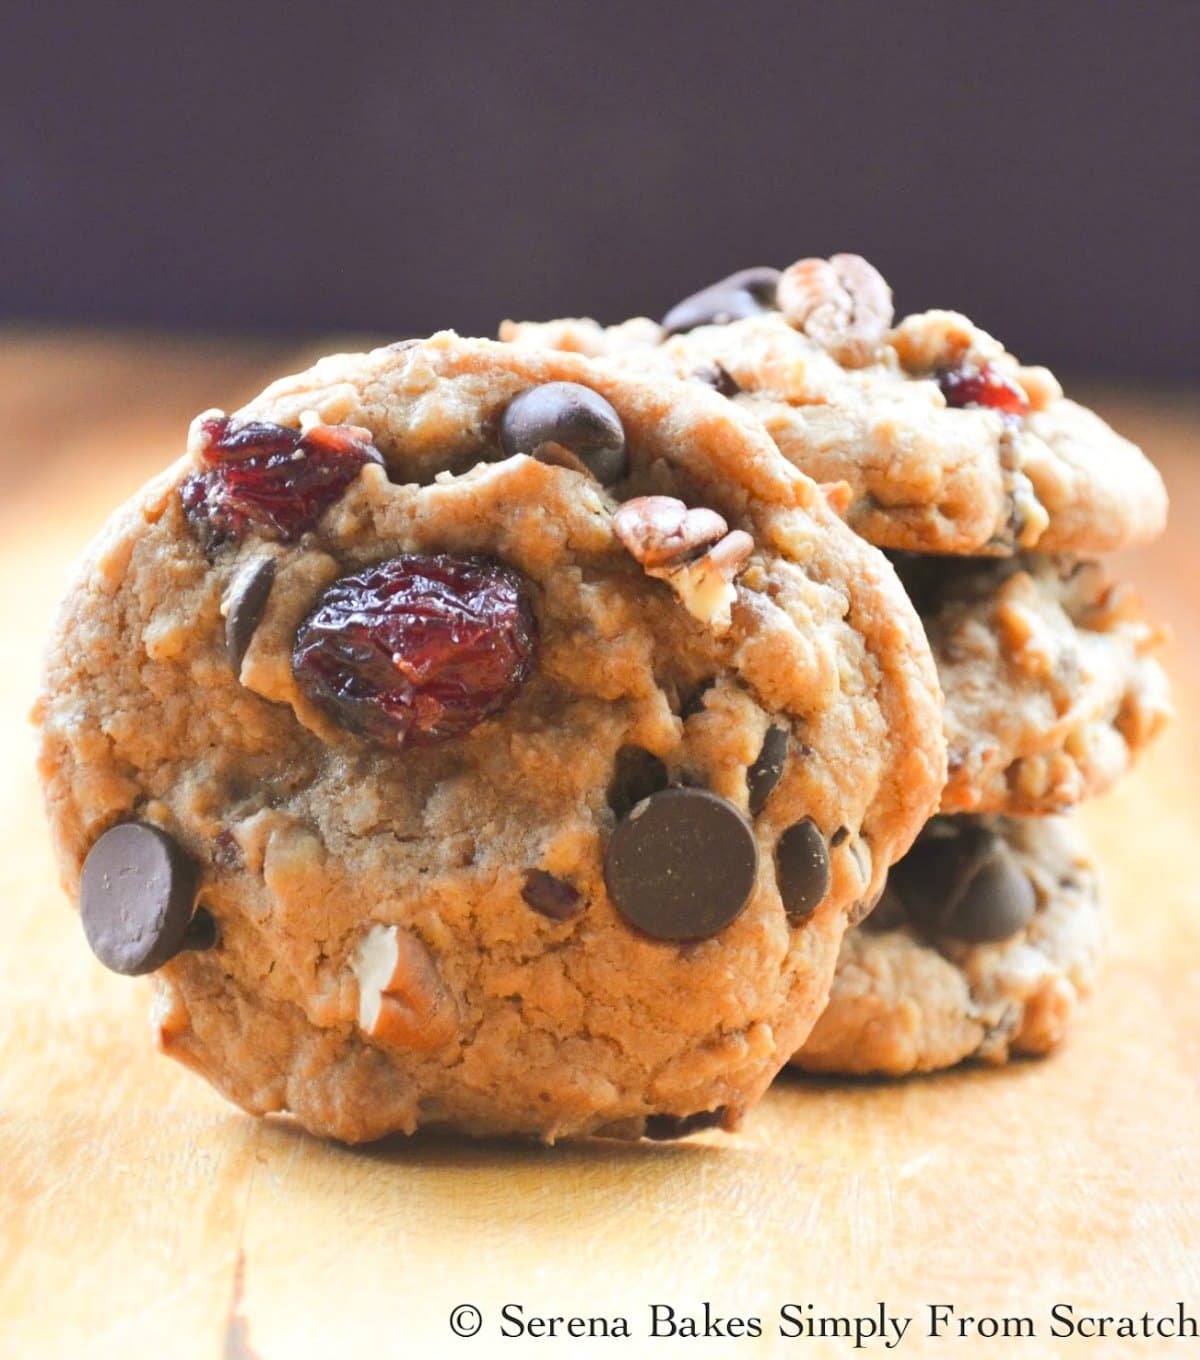 Caramel Chocolate Cranberry Treasure Cookies are a Christmas time favorite! Soft, chewy and delicious with graham cracker crumbs, coconut, dark chocolate, and dried cranberries from Serena Bakes Simply From Scratch.